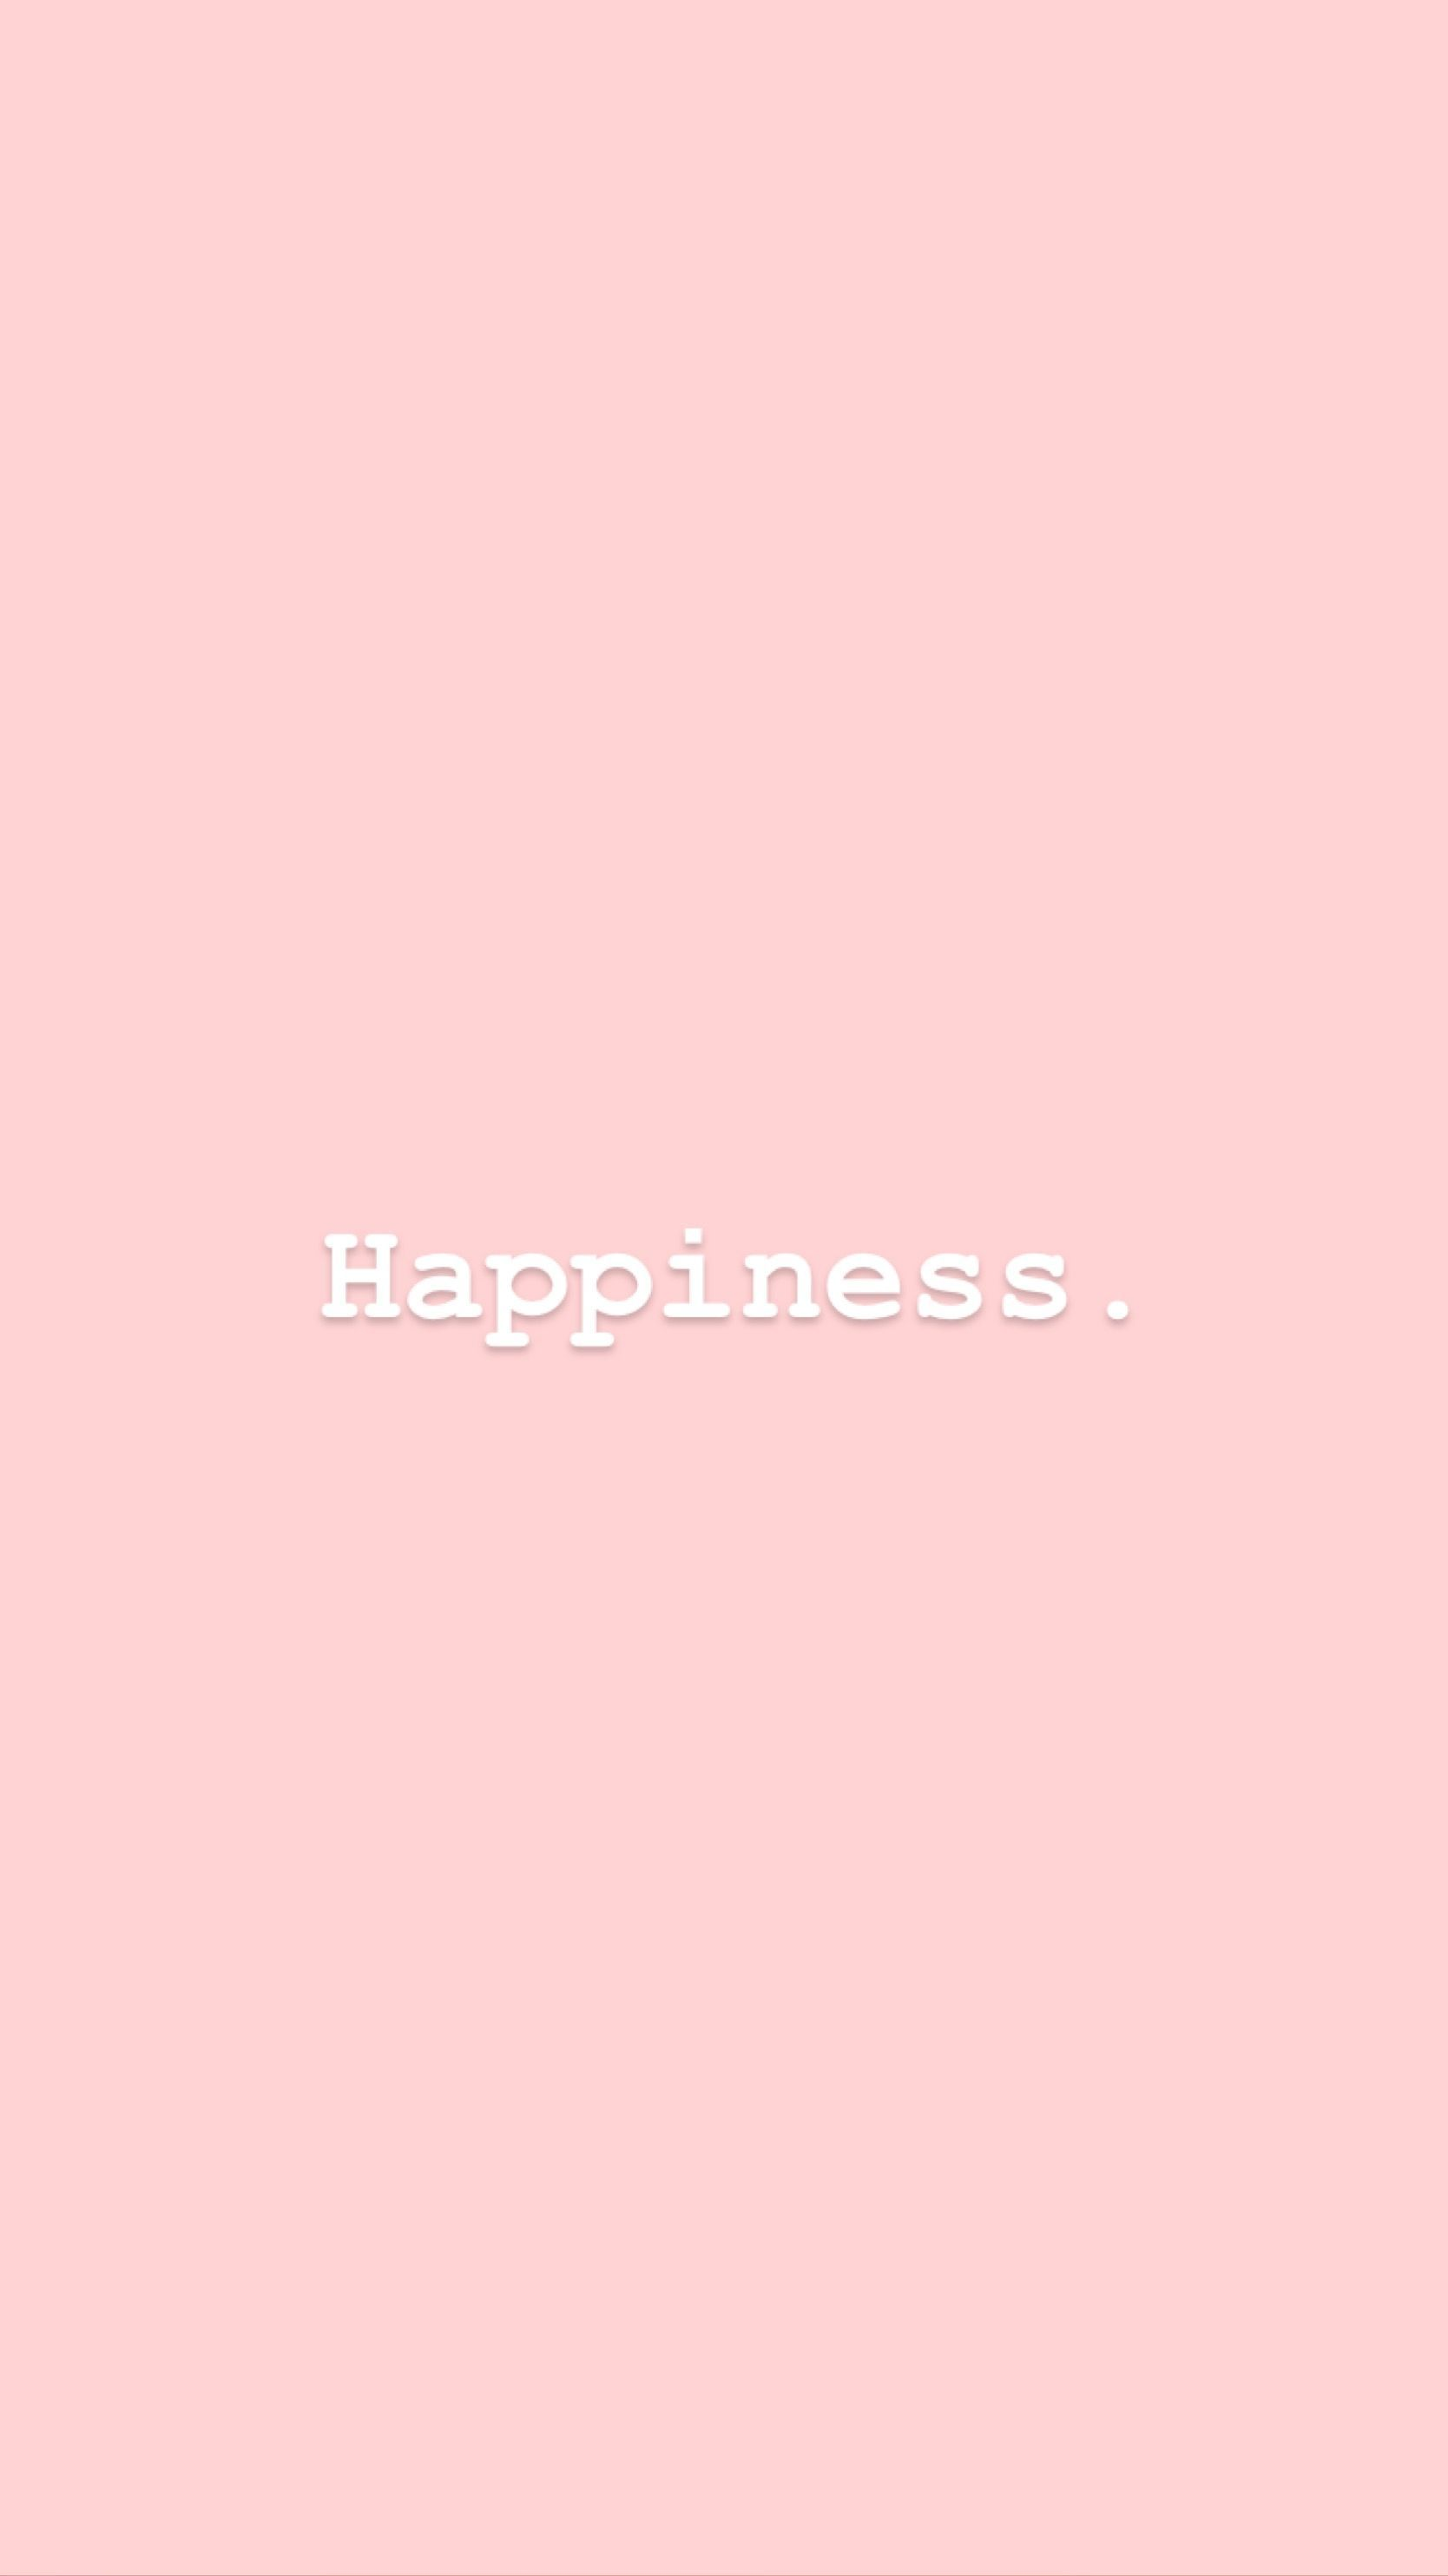 Aesthetic Quotes Pink Wallpapers - Wallpaper Cave